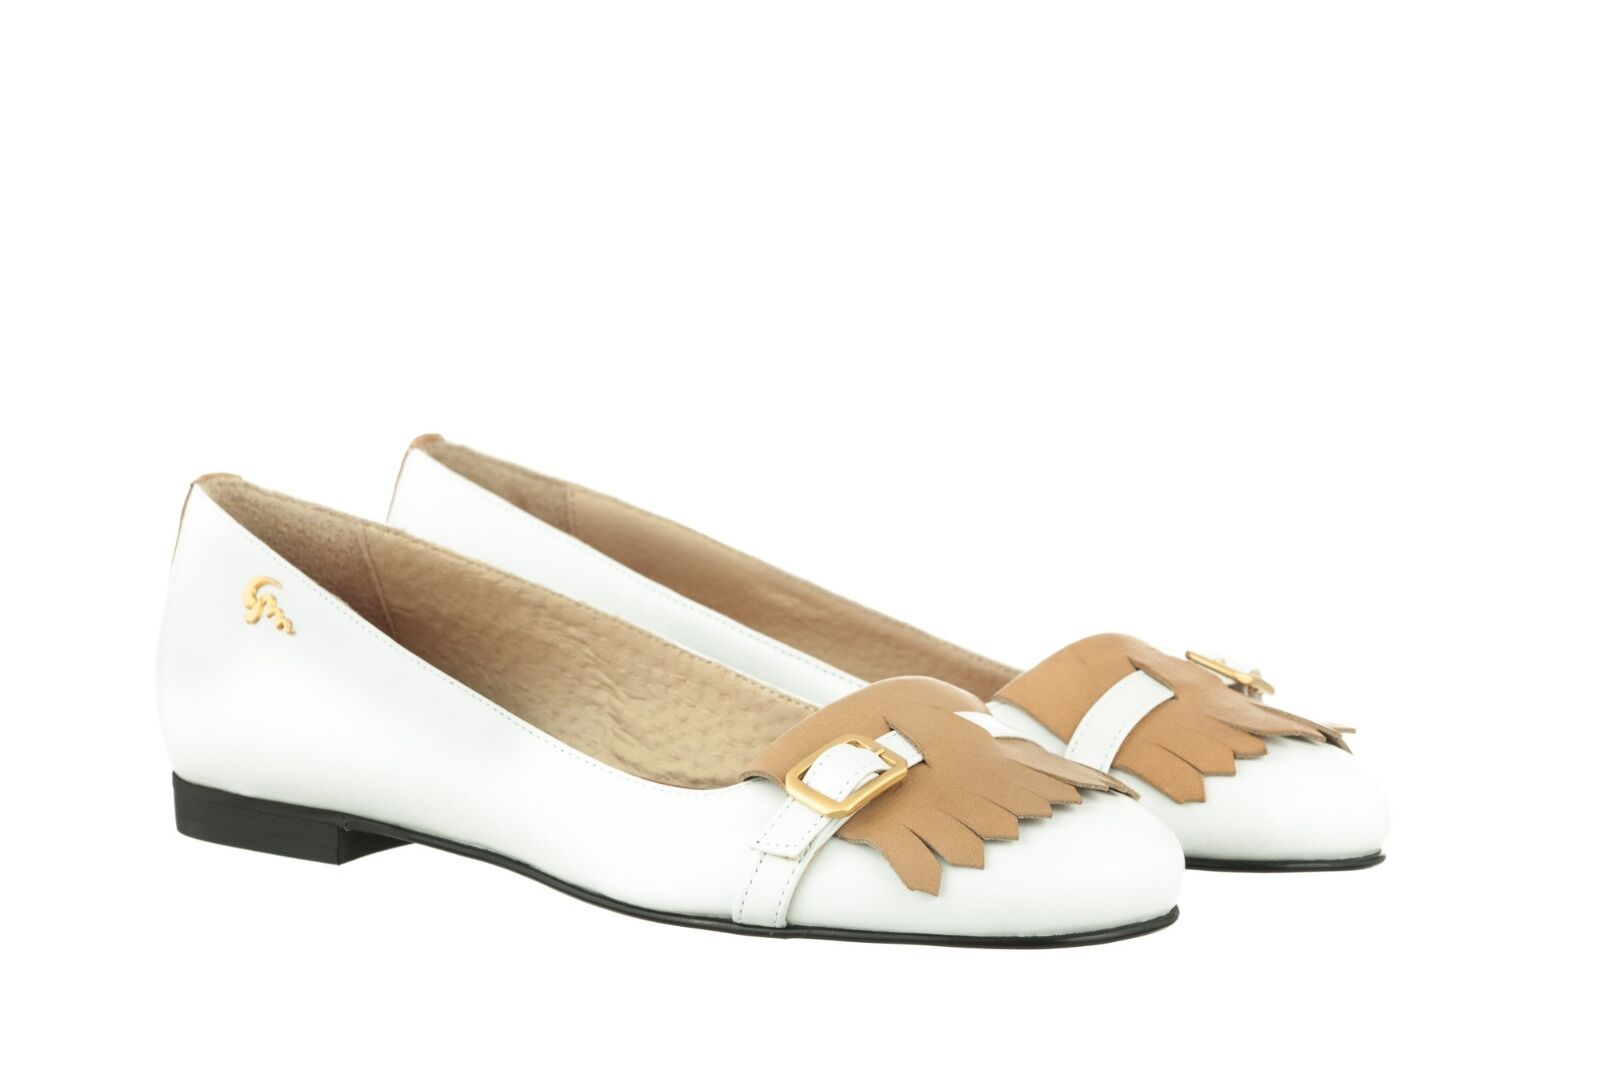 MORI MADE IN ITALY NEW FLATS chaussures chaussures BALLERINA REAL LEATHER blanc BIANCO 40